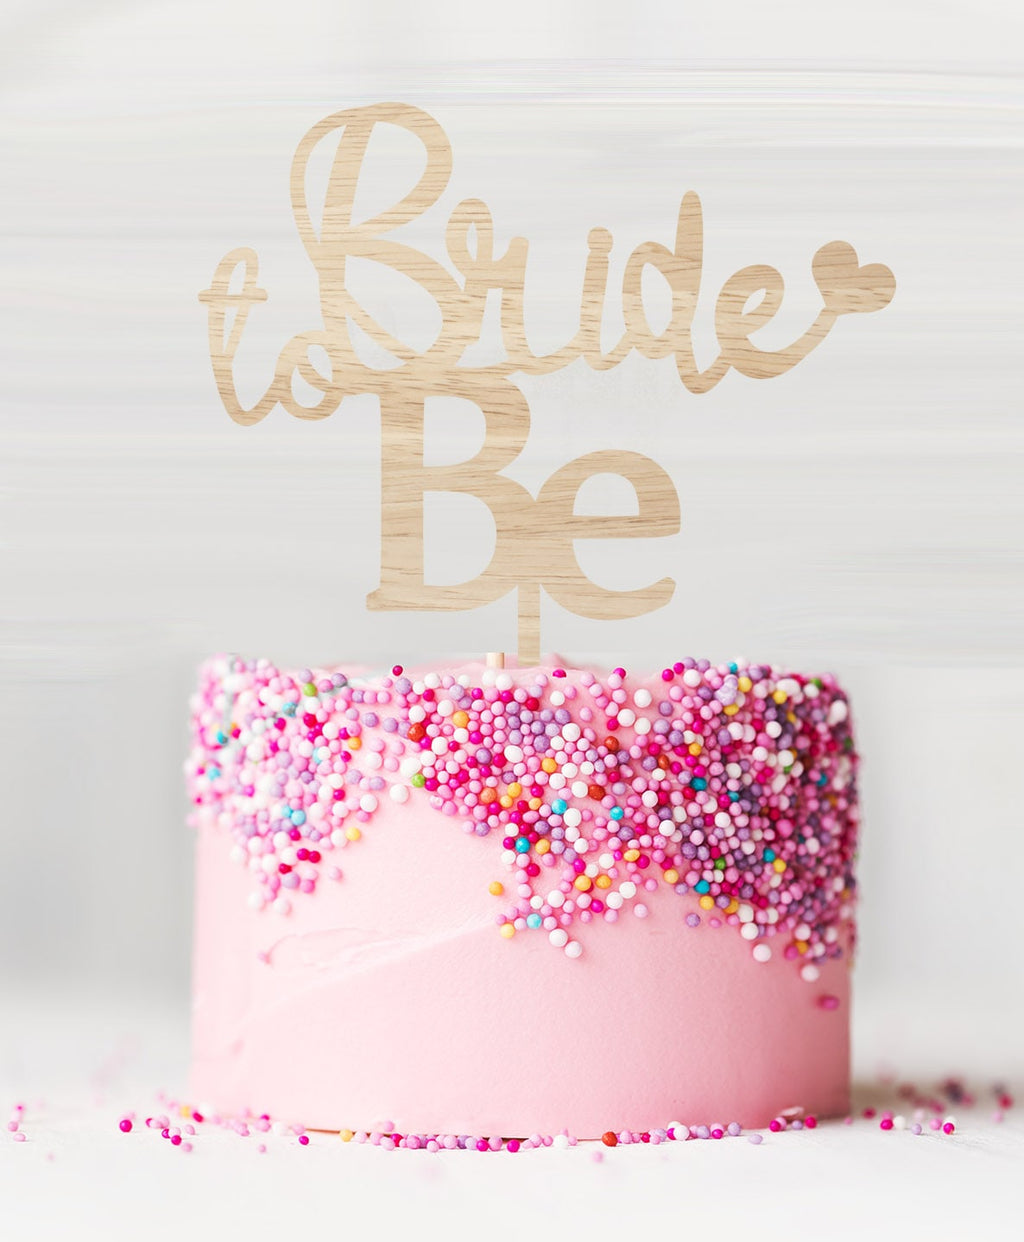 Bride to Be Cake Topper Birch Wood